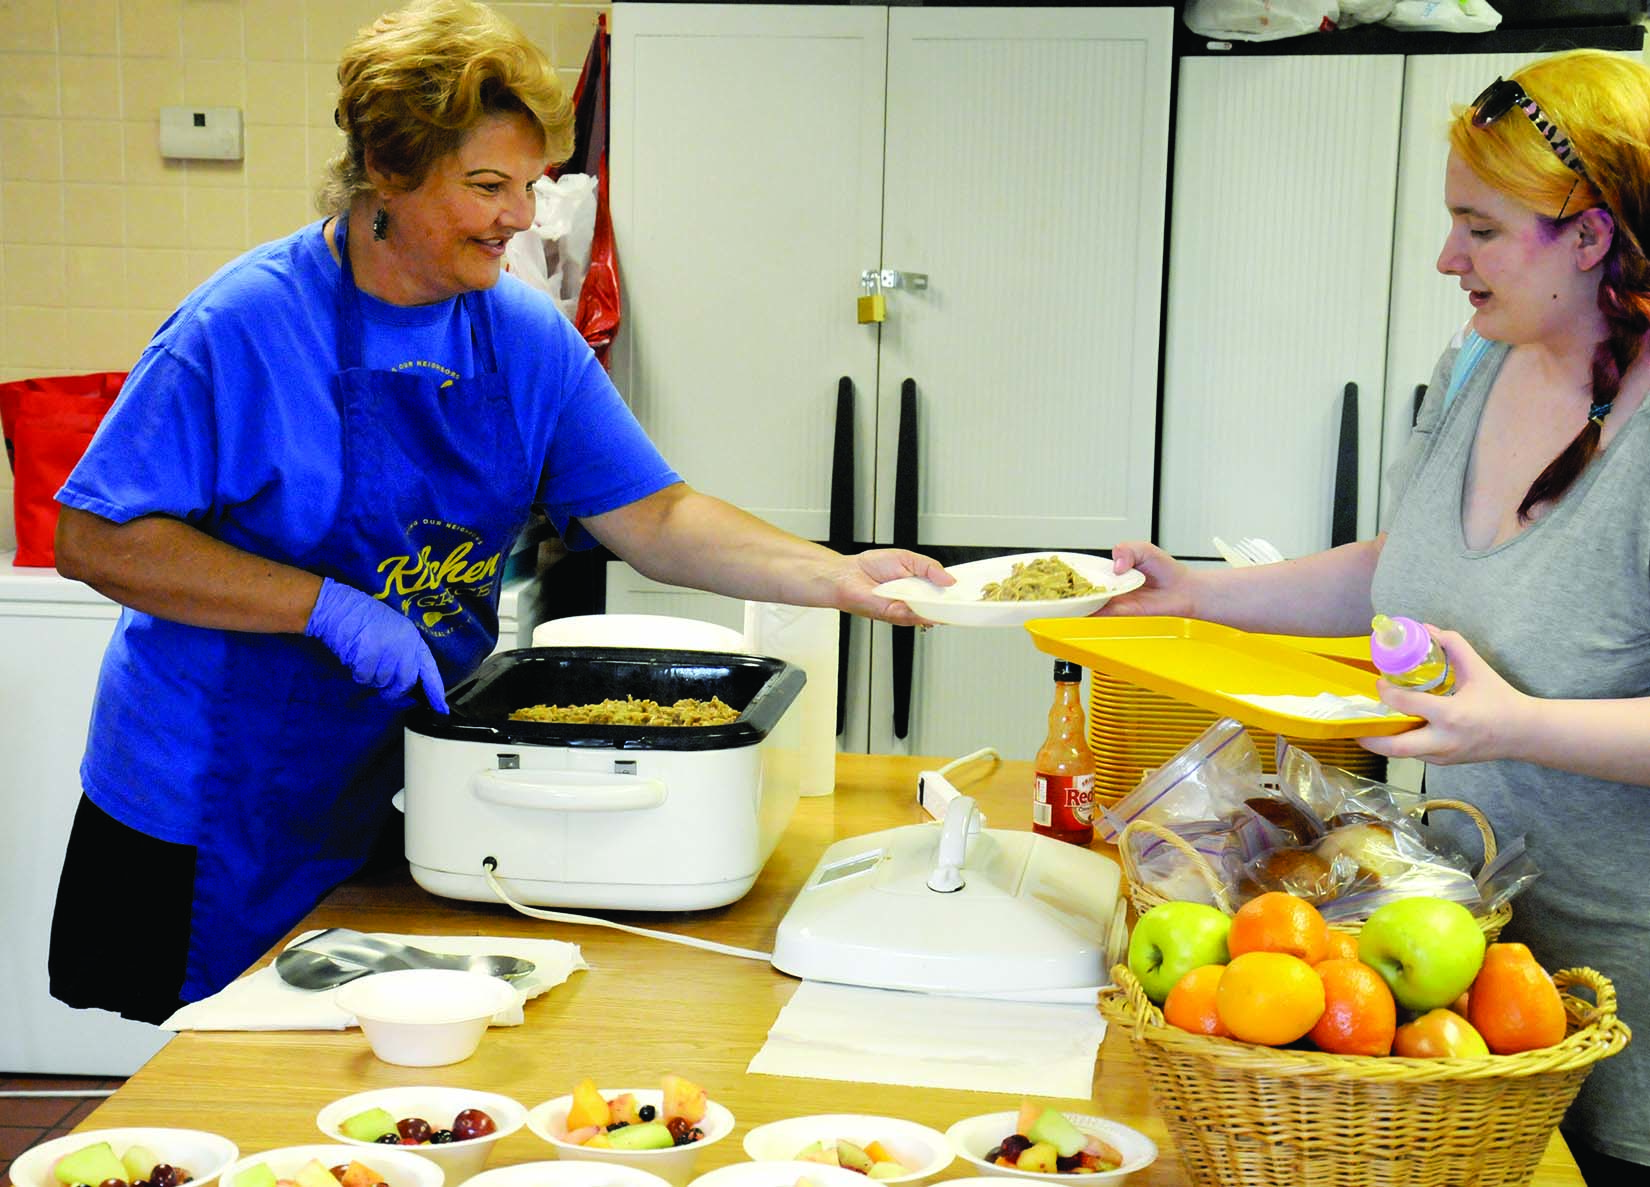 Shippensburg's First Church of God offers a free dinner to community members every Friday night.